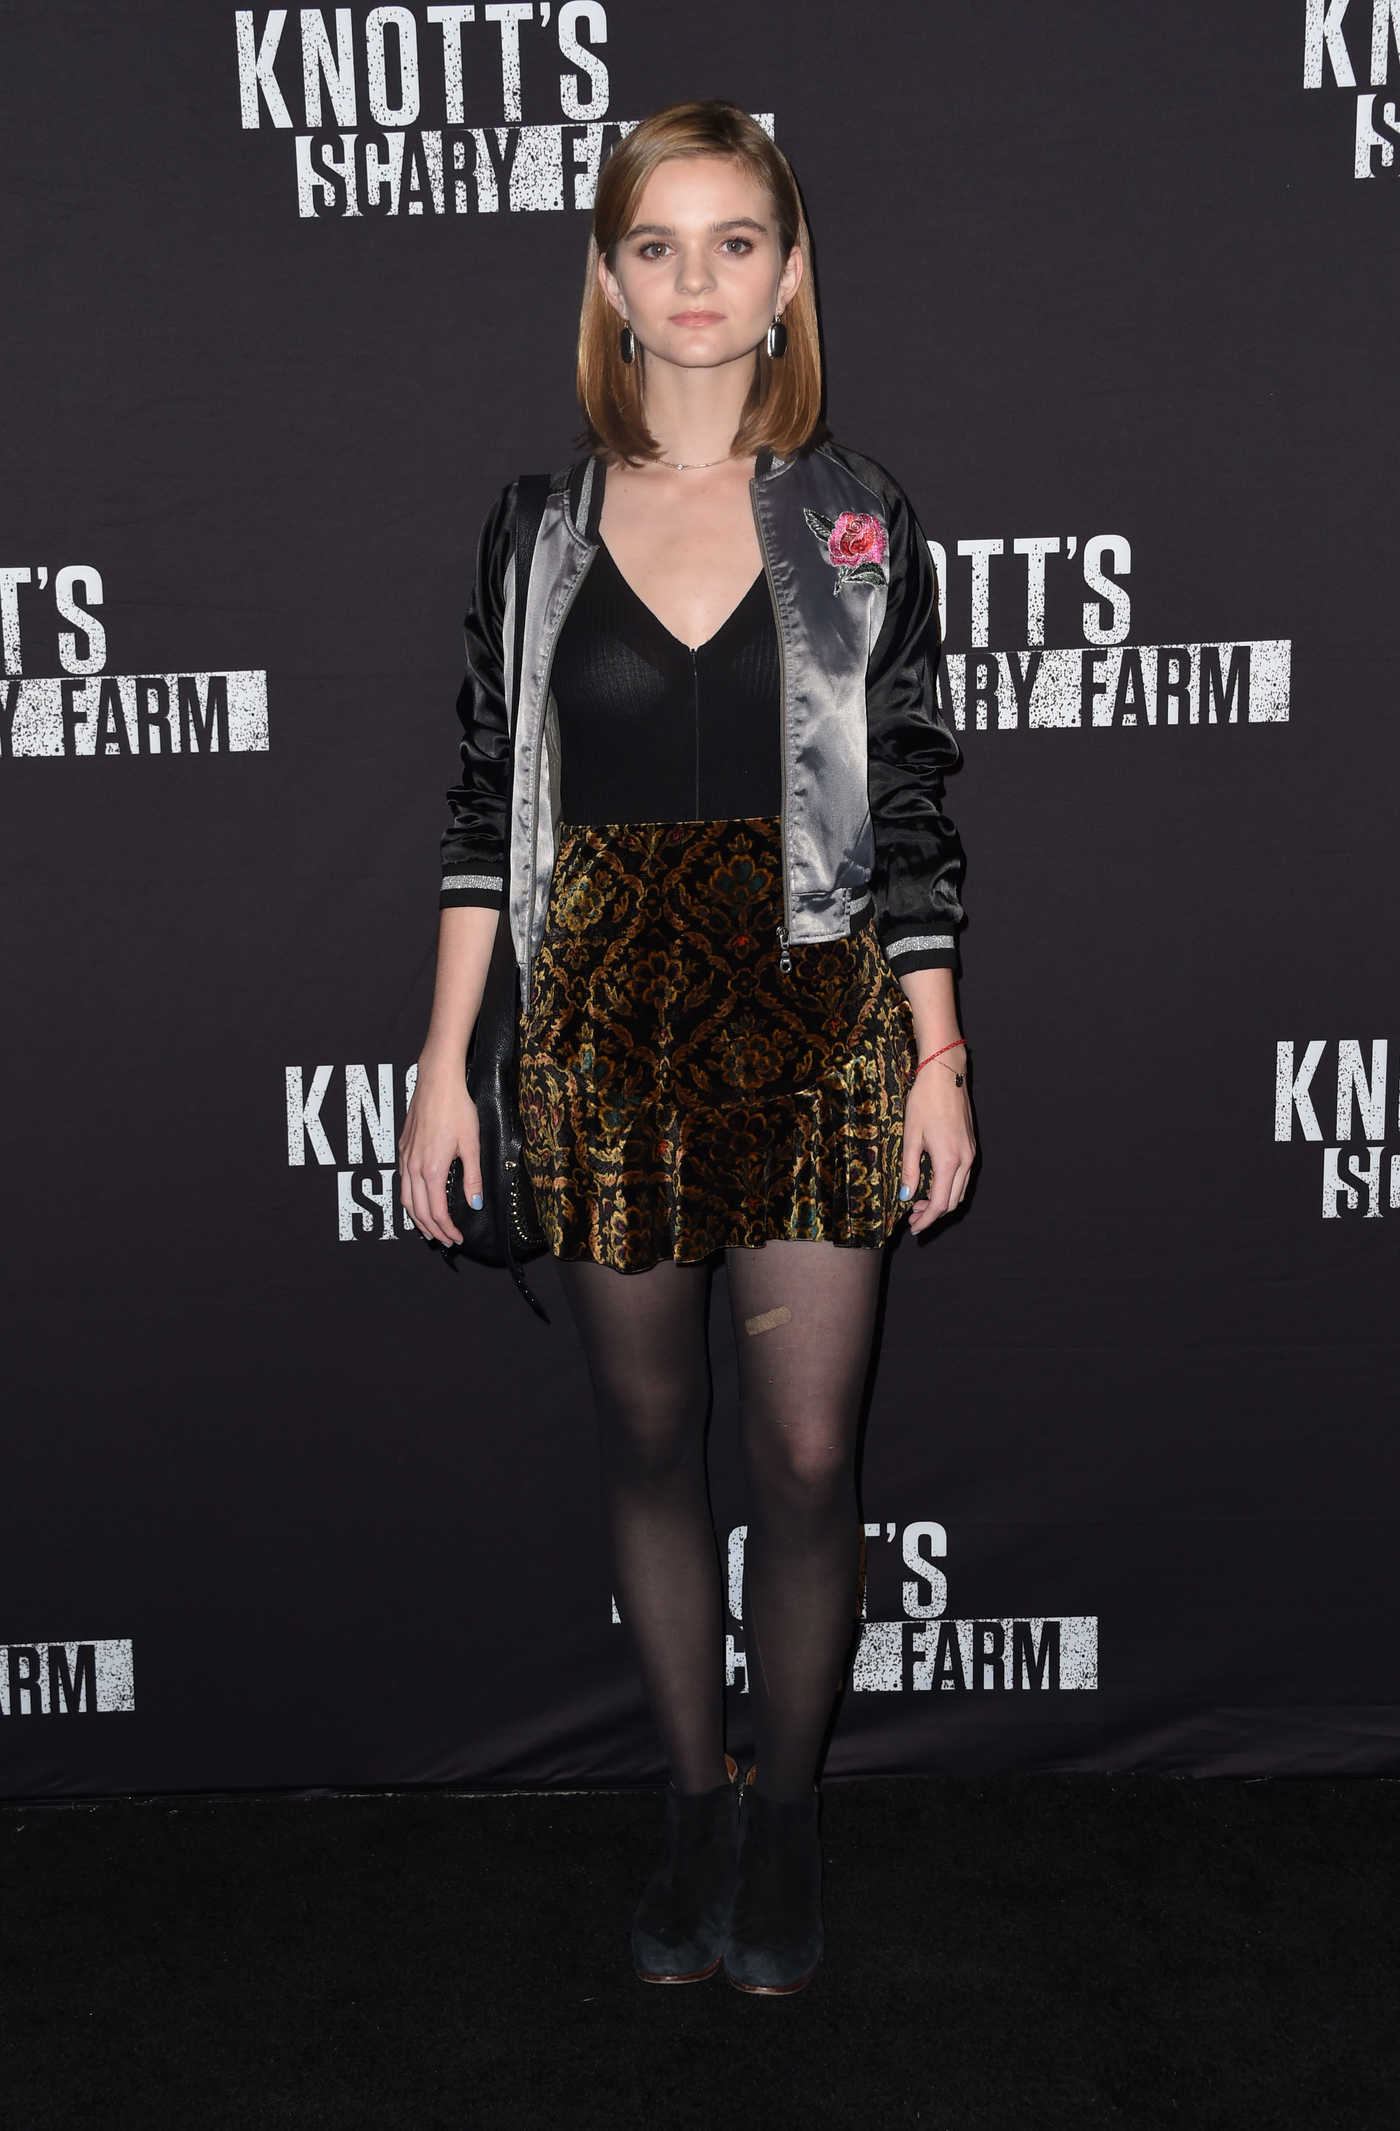 Kerris Dorsey at the Knott's Scary Farm Opening Night in Buena Park 09/30/2016